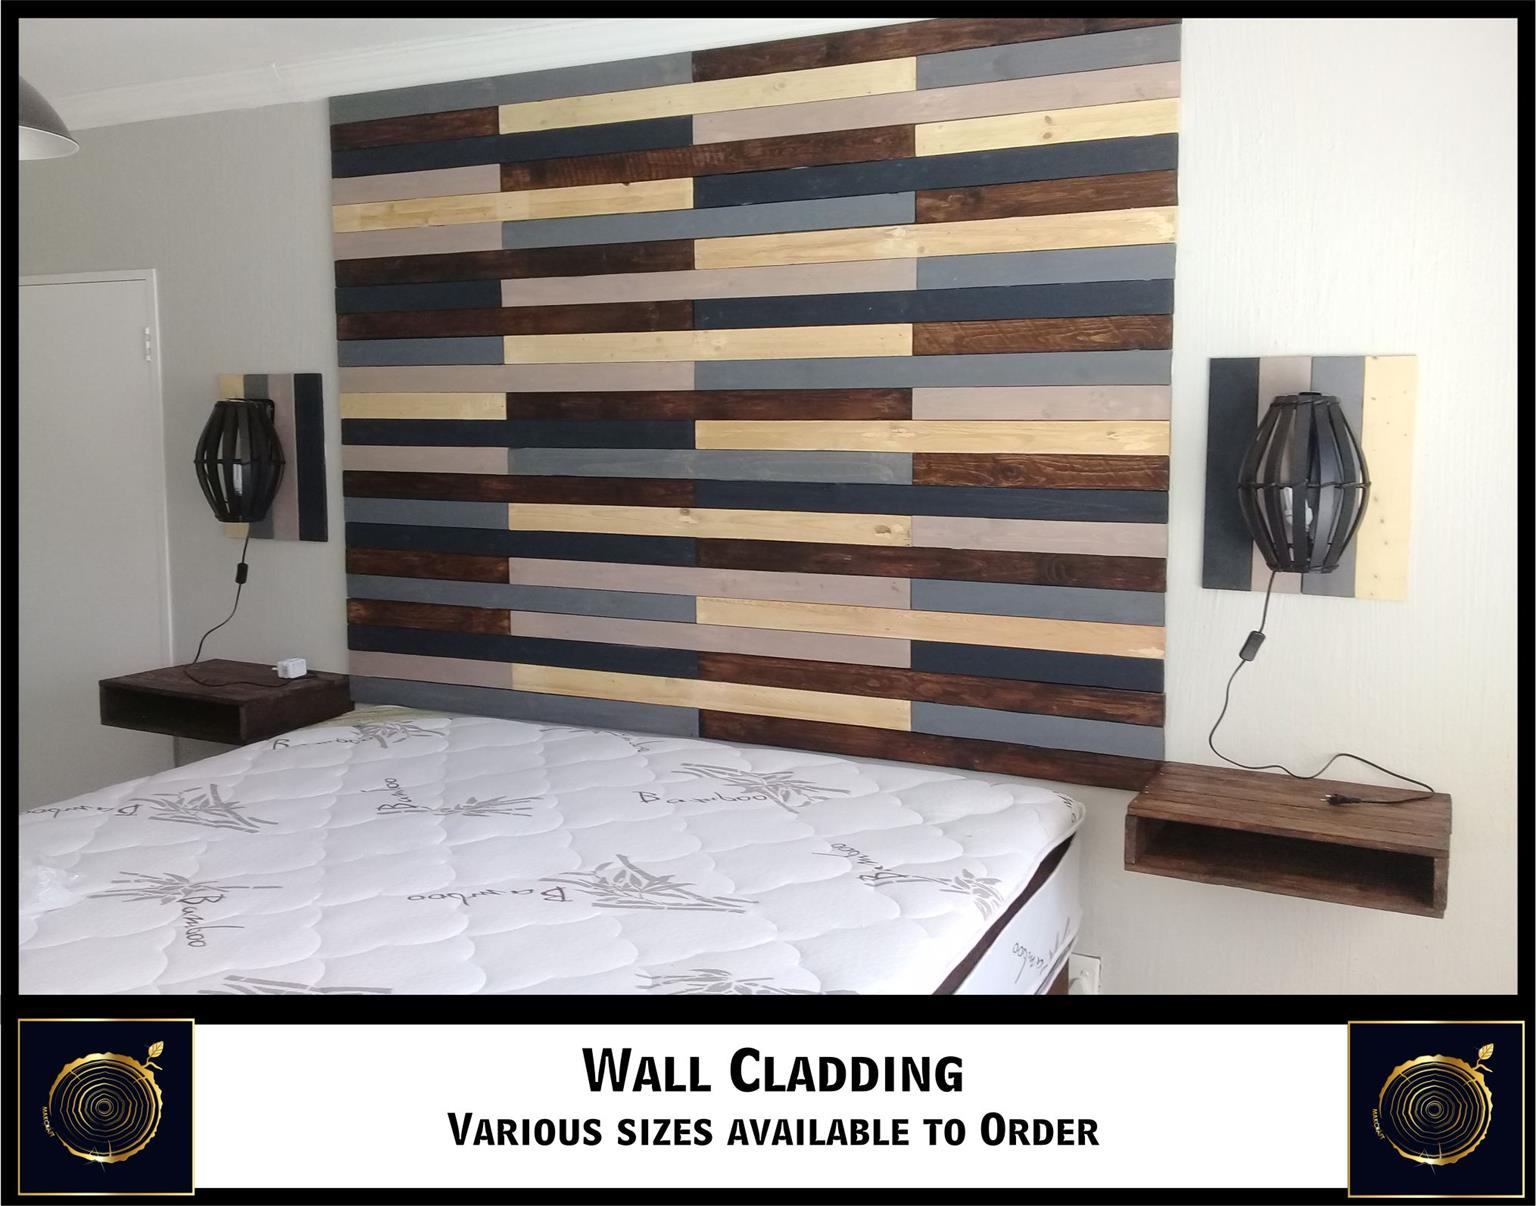 Wall Cladding & Decoration